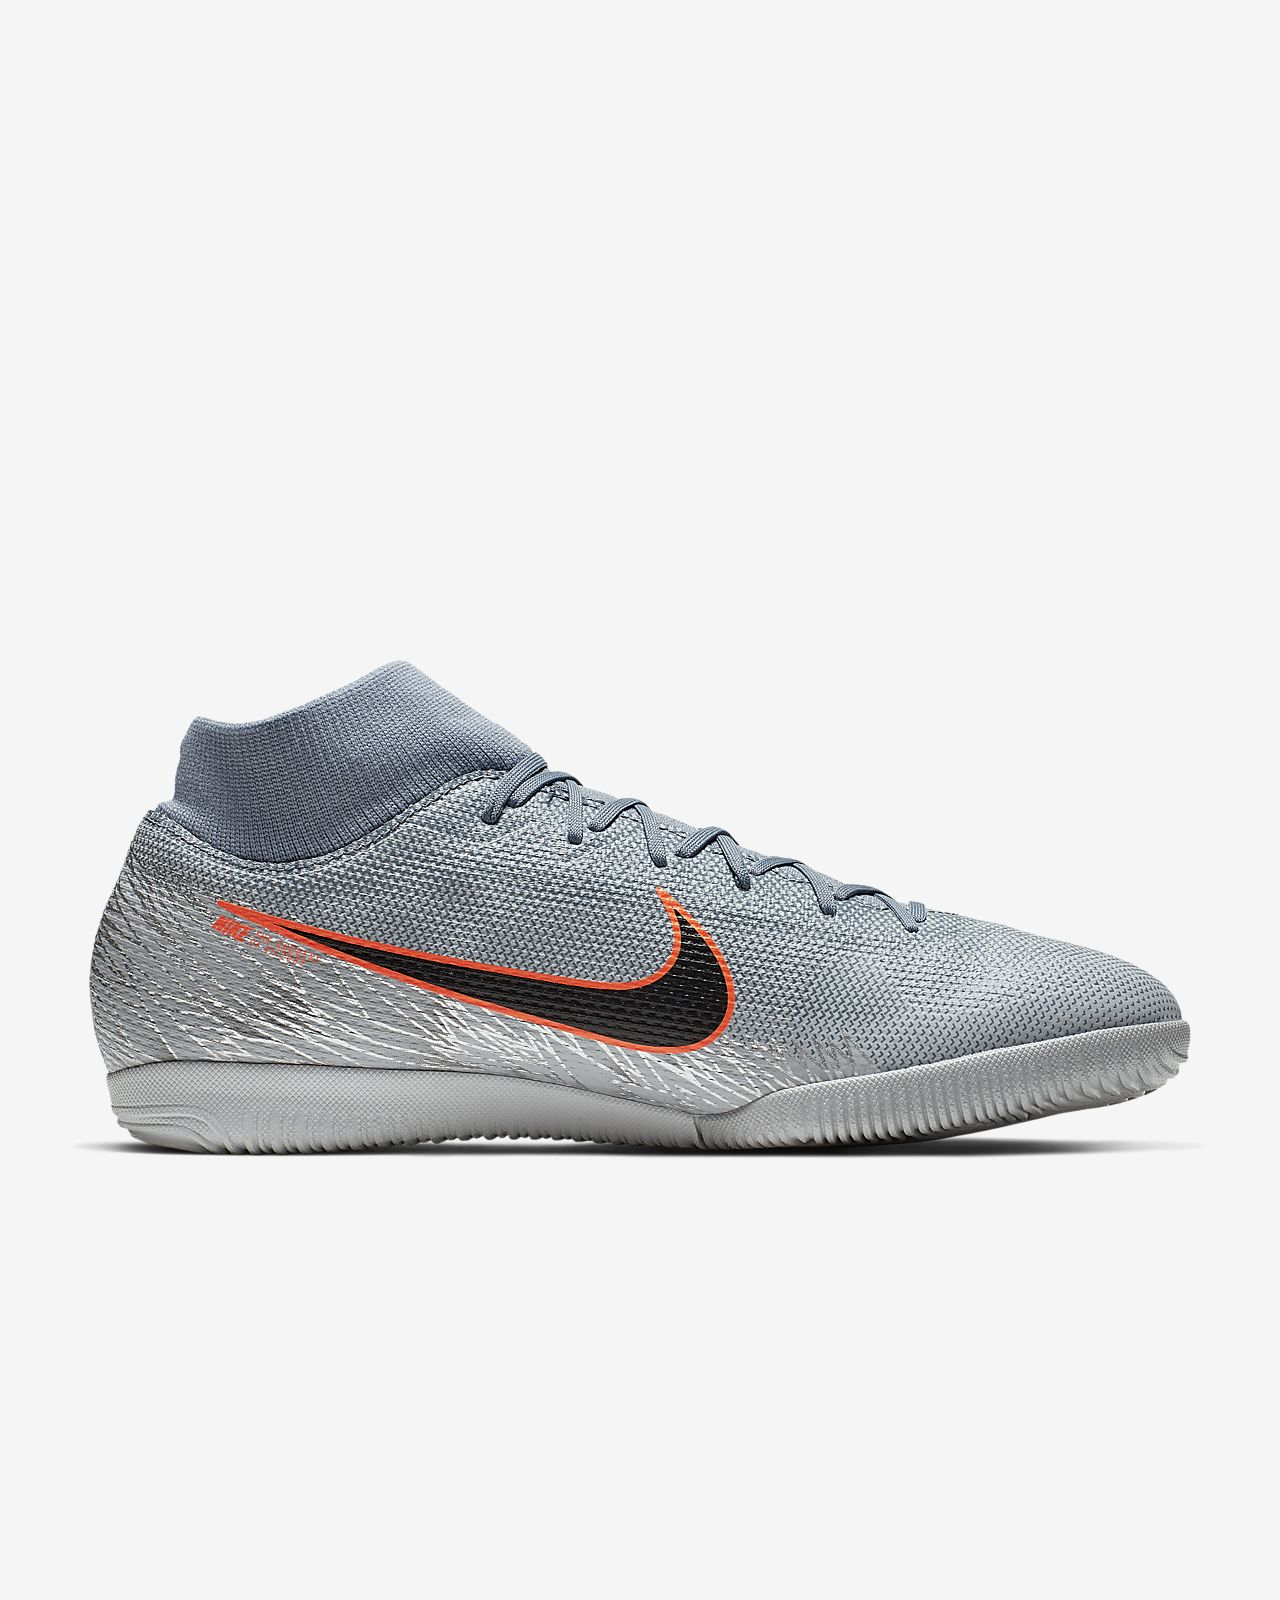 4f1a921ef Nike SuperflyX 6 Academy IC Indoor Court Soccer Cleat. Nike.com